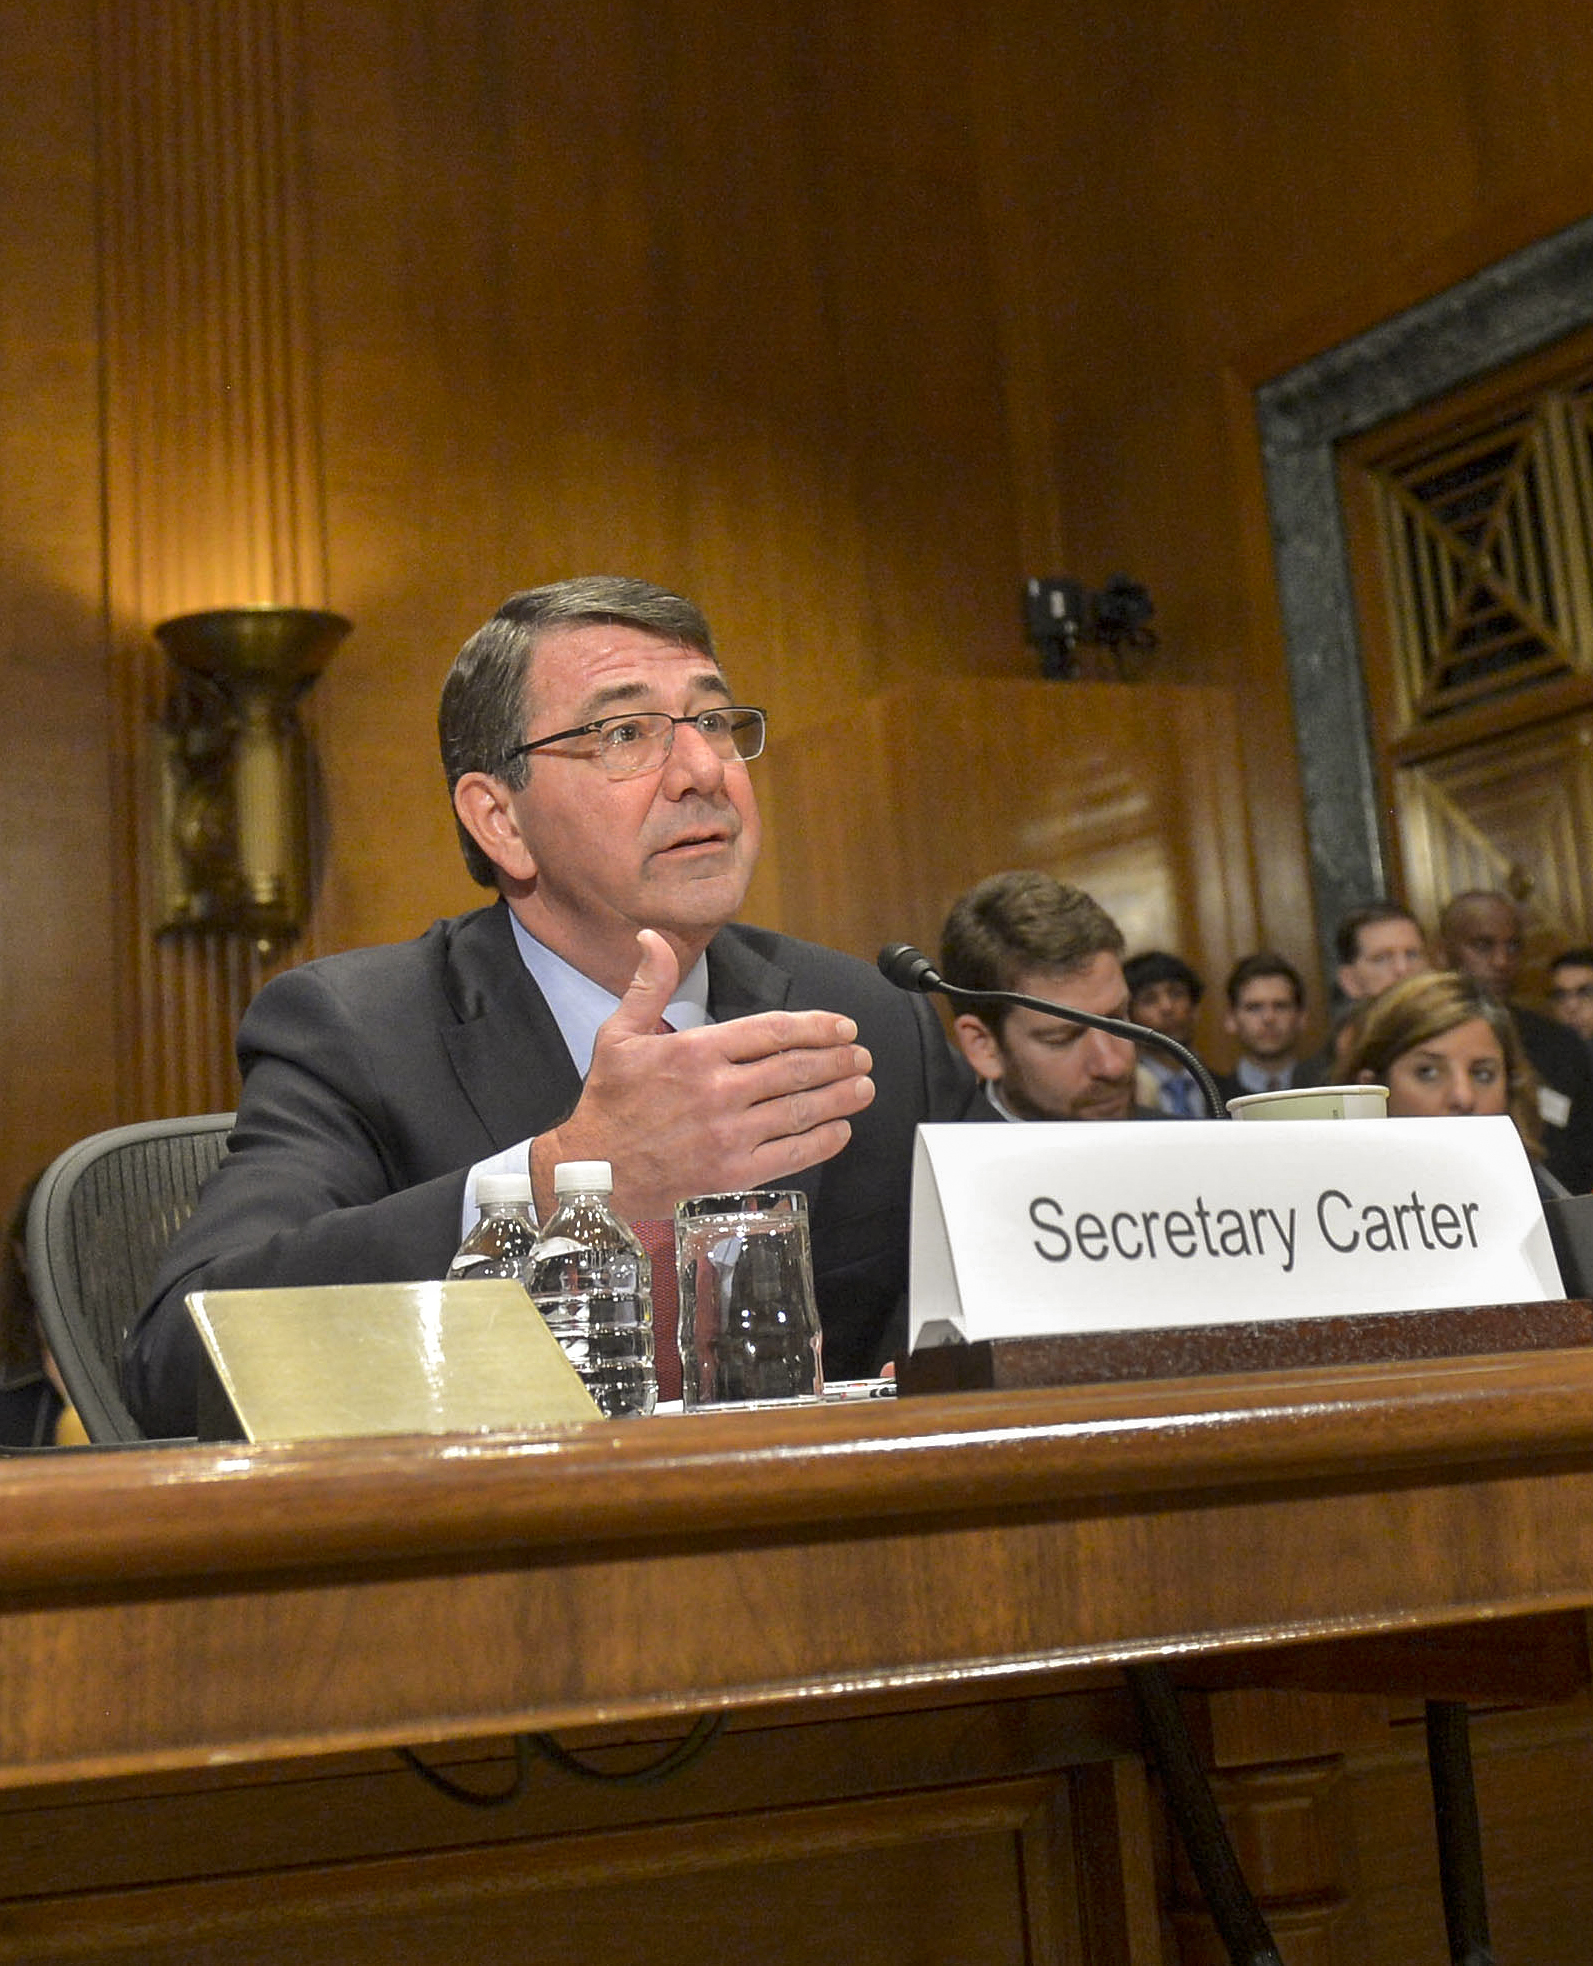 Defense Secretary Ash Carter speaking at a briefing.